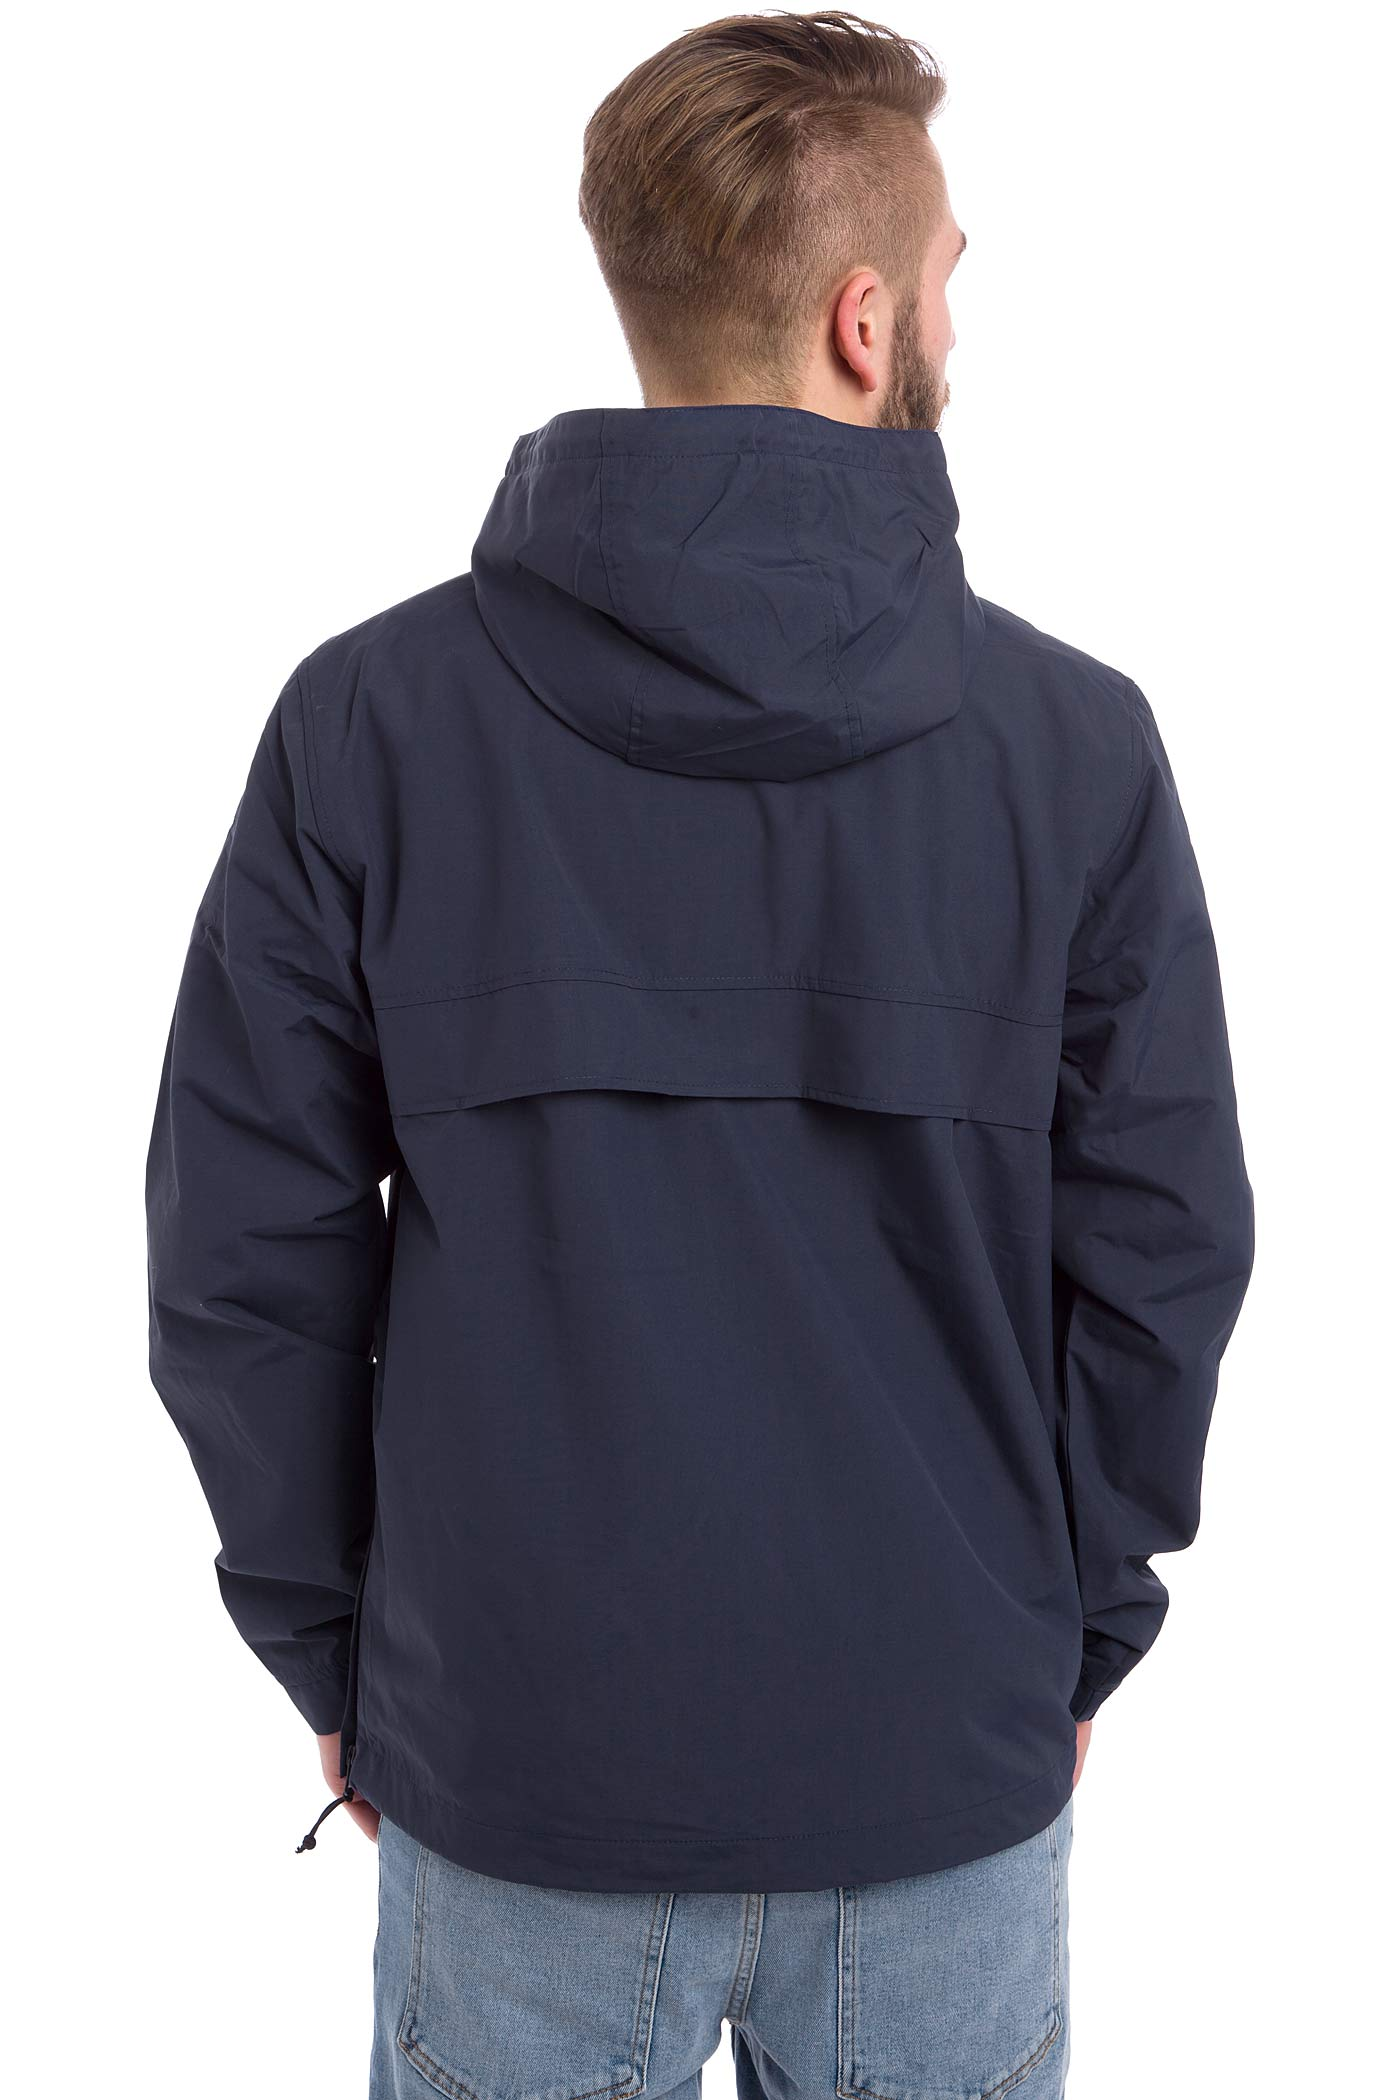 carhartt wip nimbus pullover jacket blue buy at skatedeluxe. Black Bedroom Furniture Sets. Home Design Ideas